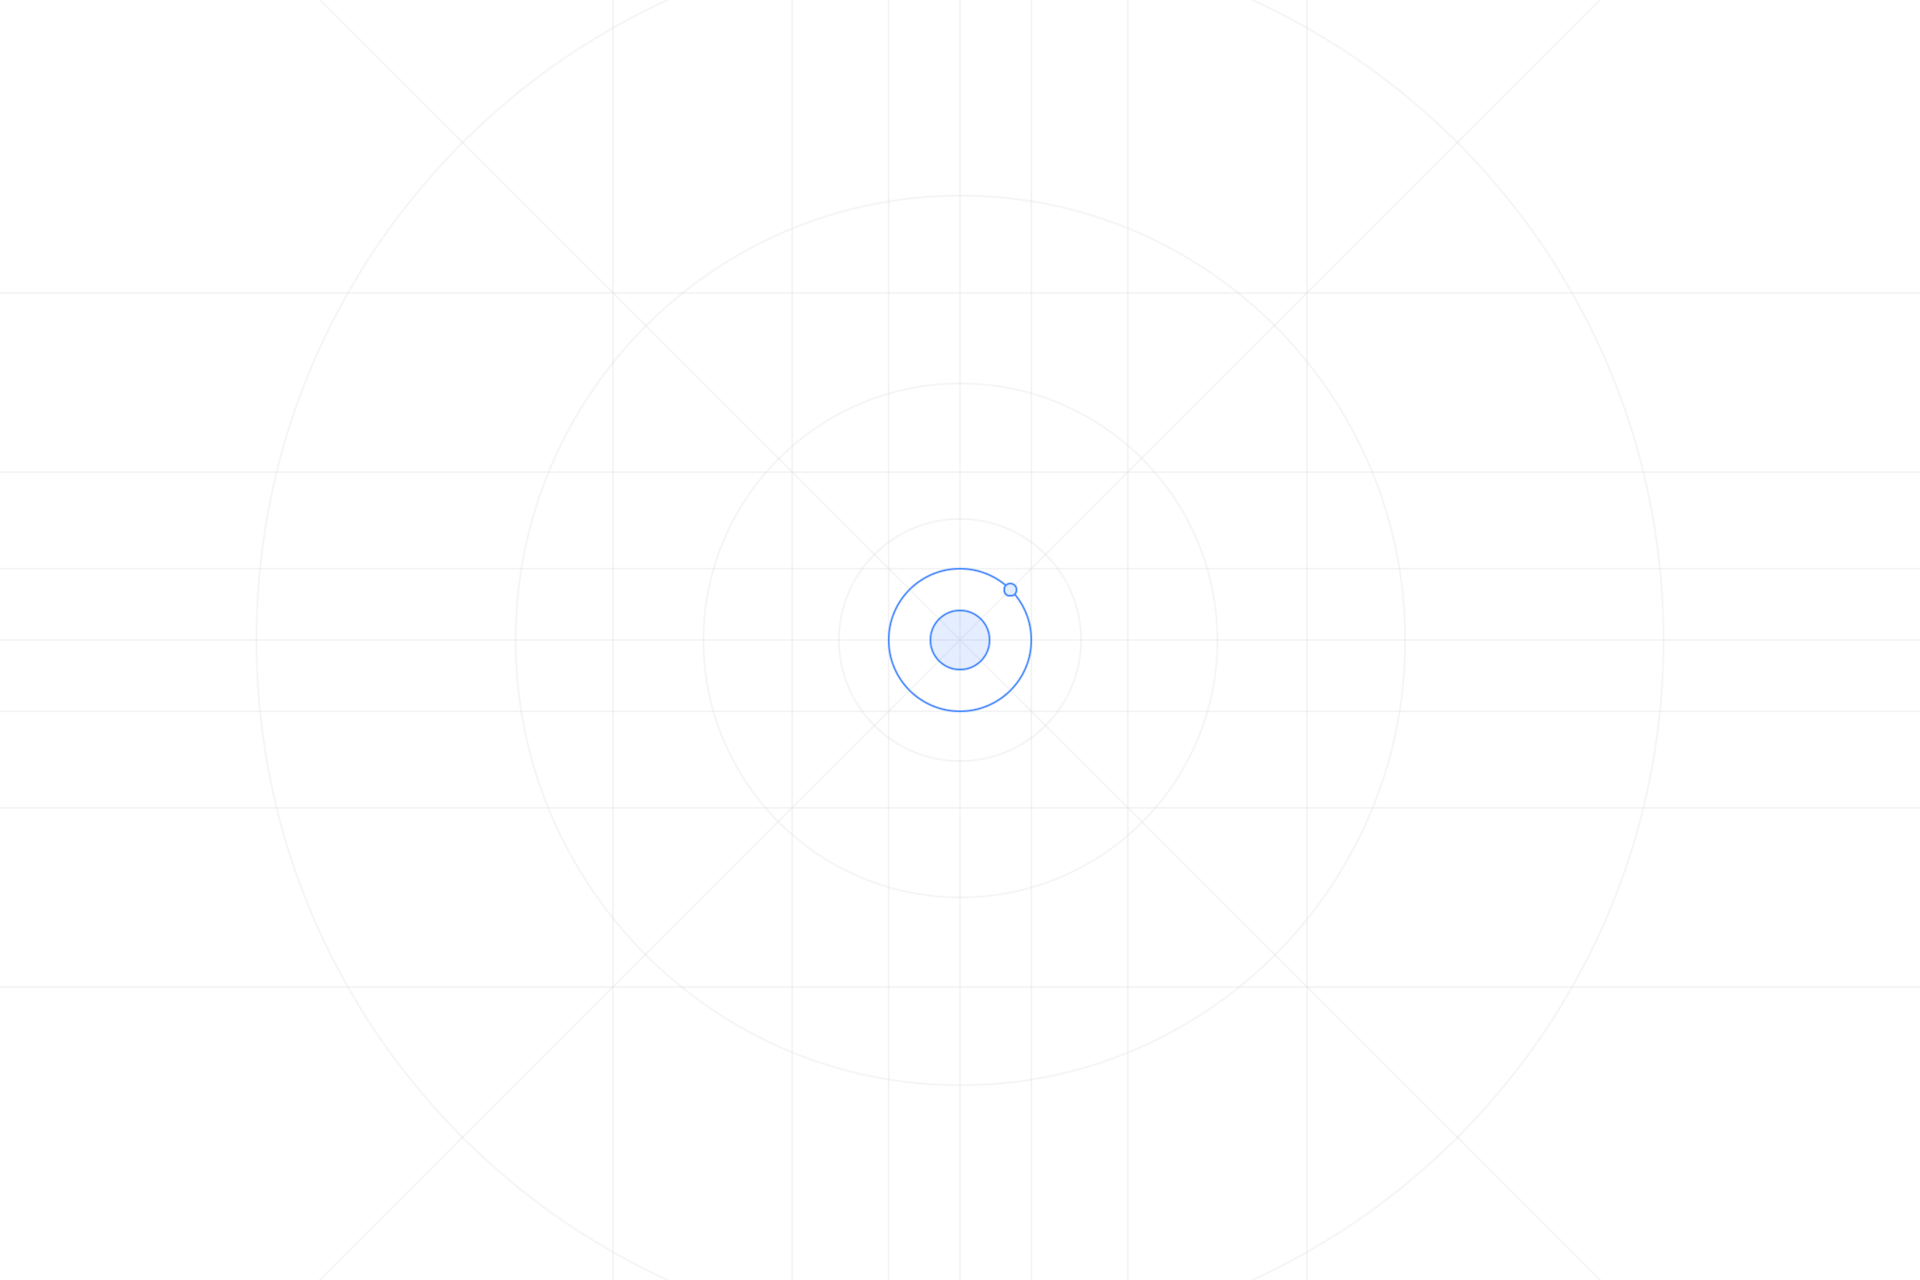 klu5/resources/android/splash/drawable-land-xxxhdpi-screen.png